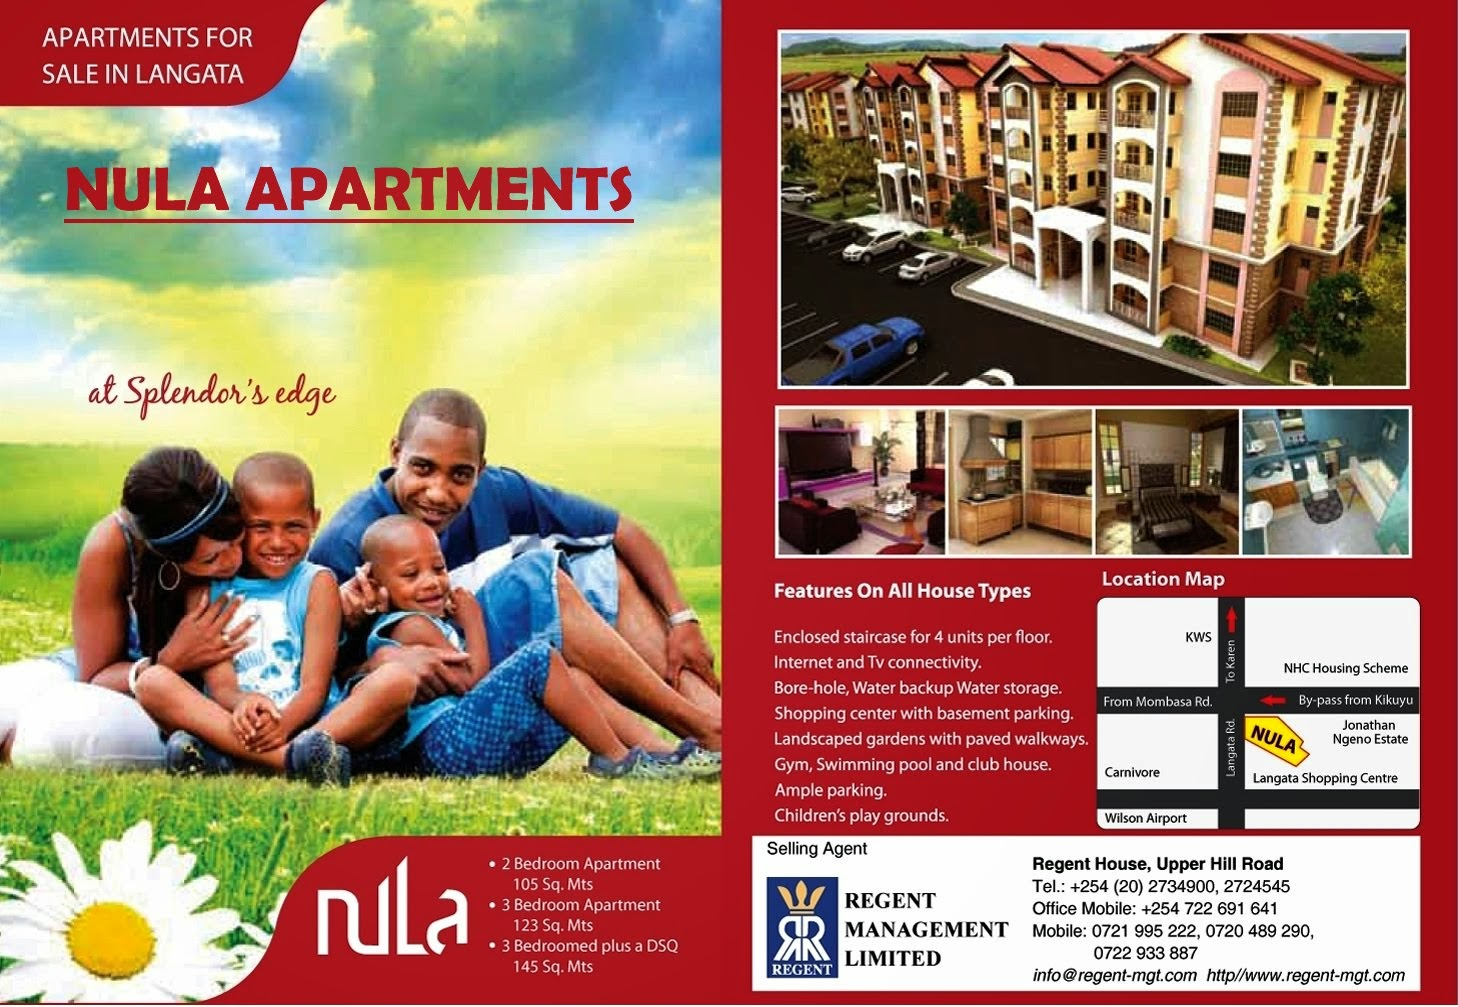 NULA APARTMENTS FOR SALE